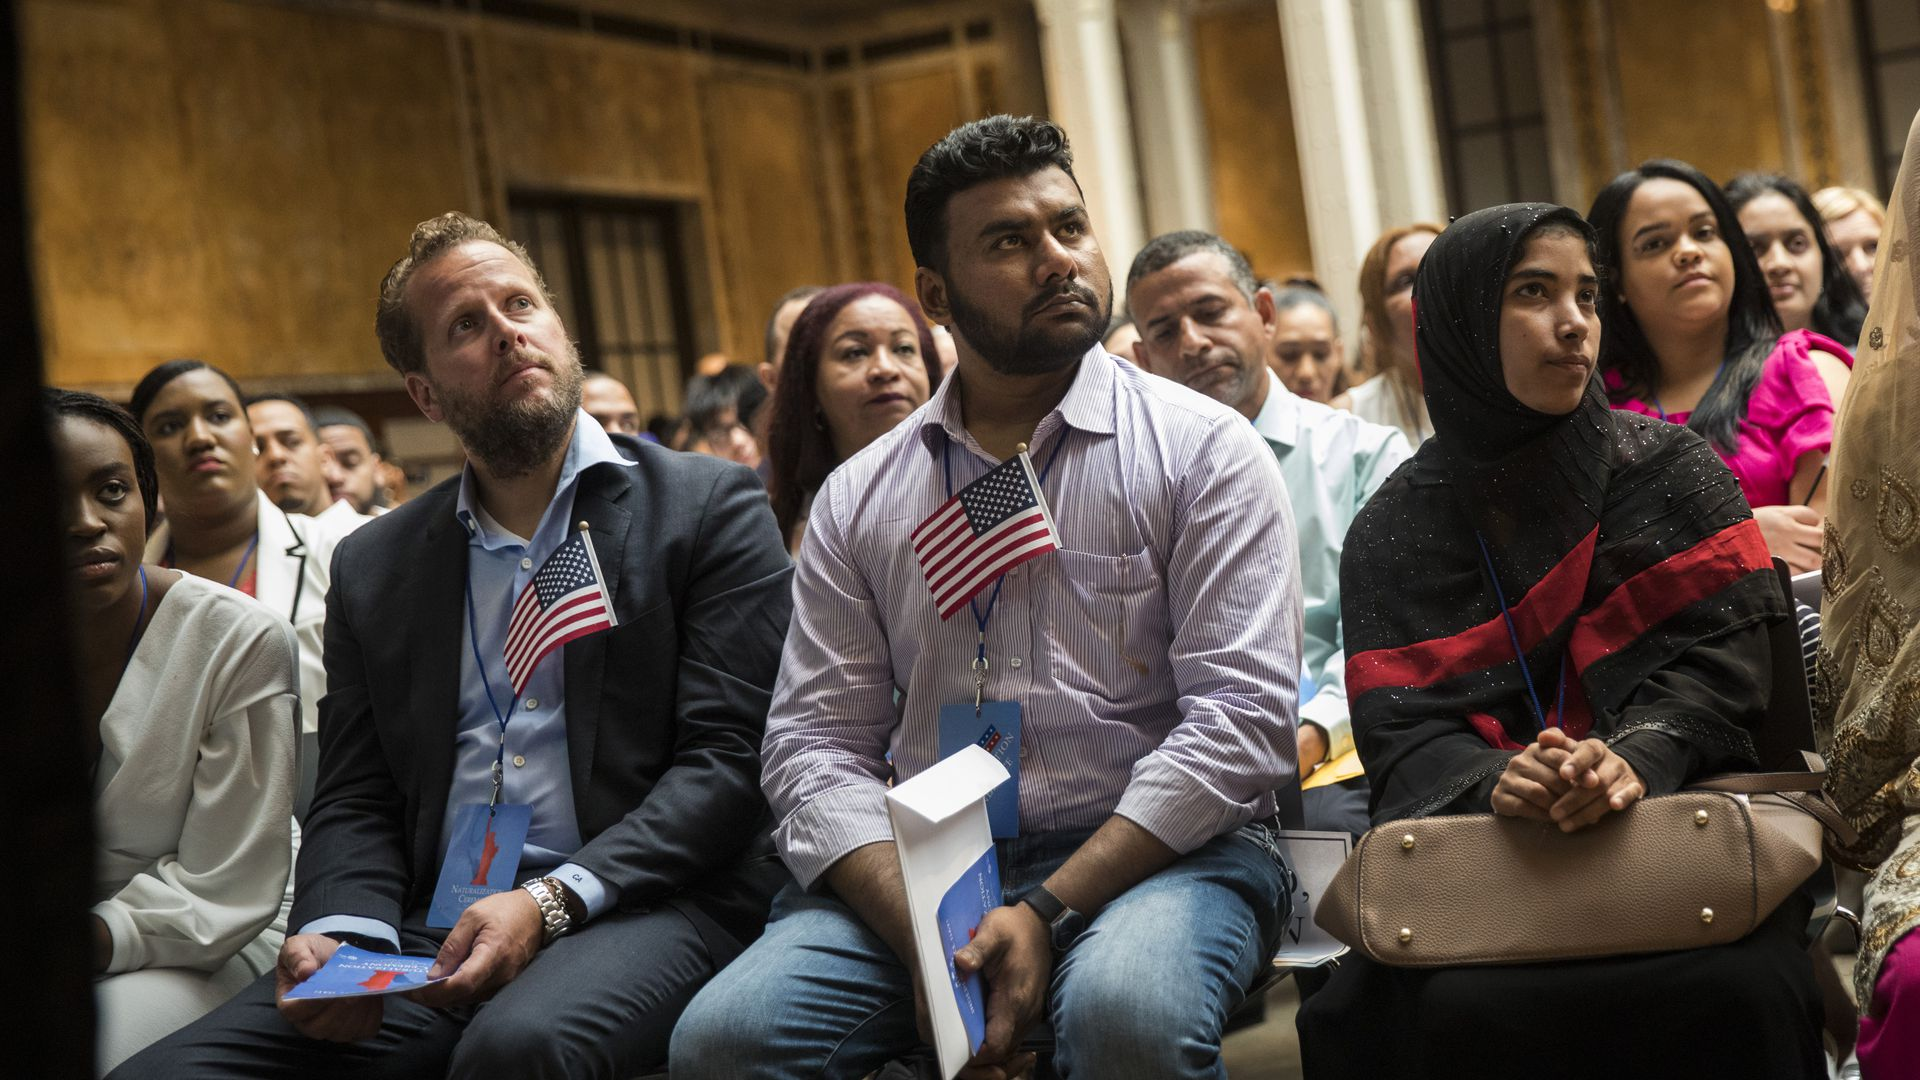 Immigrants participate in a naturalization ceremony to officially become U.S. citizens at the New York Public Library. Photo by Drew Angerer/Getty Images